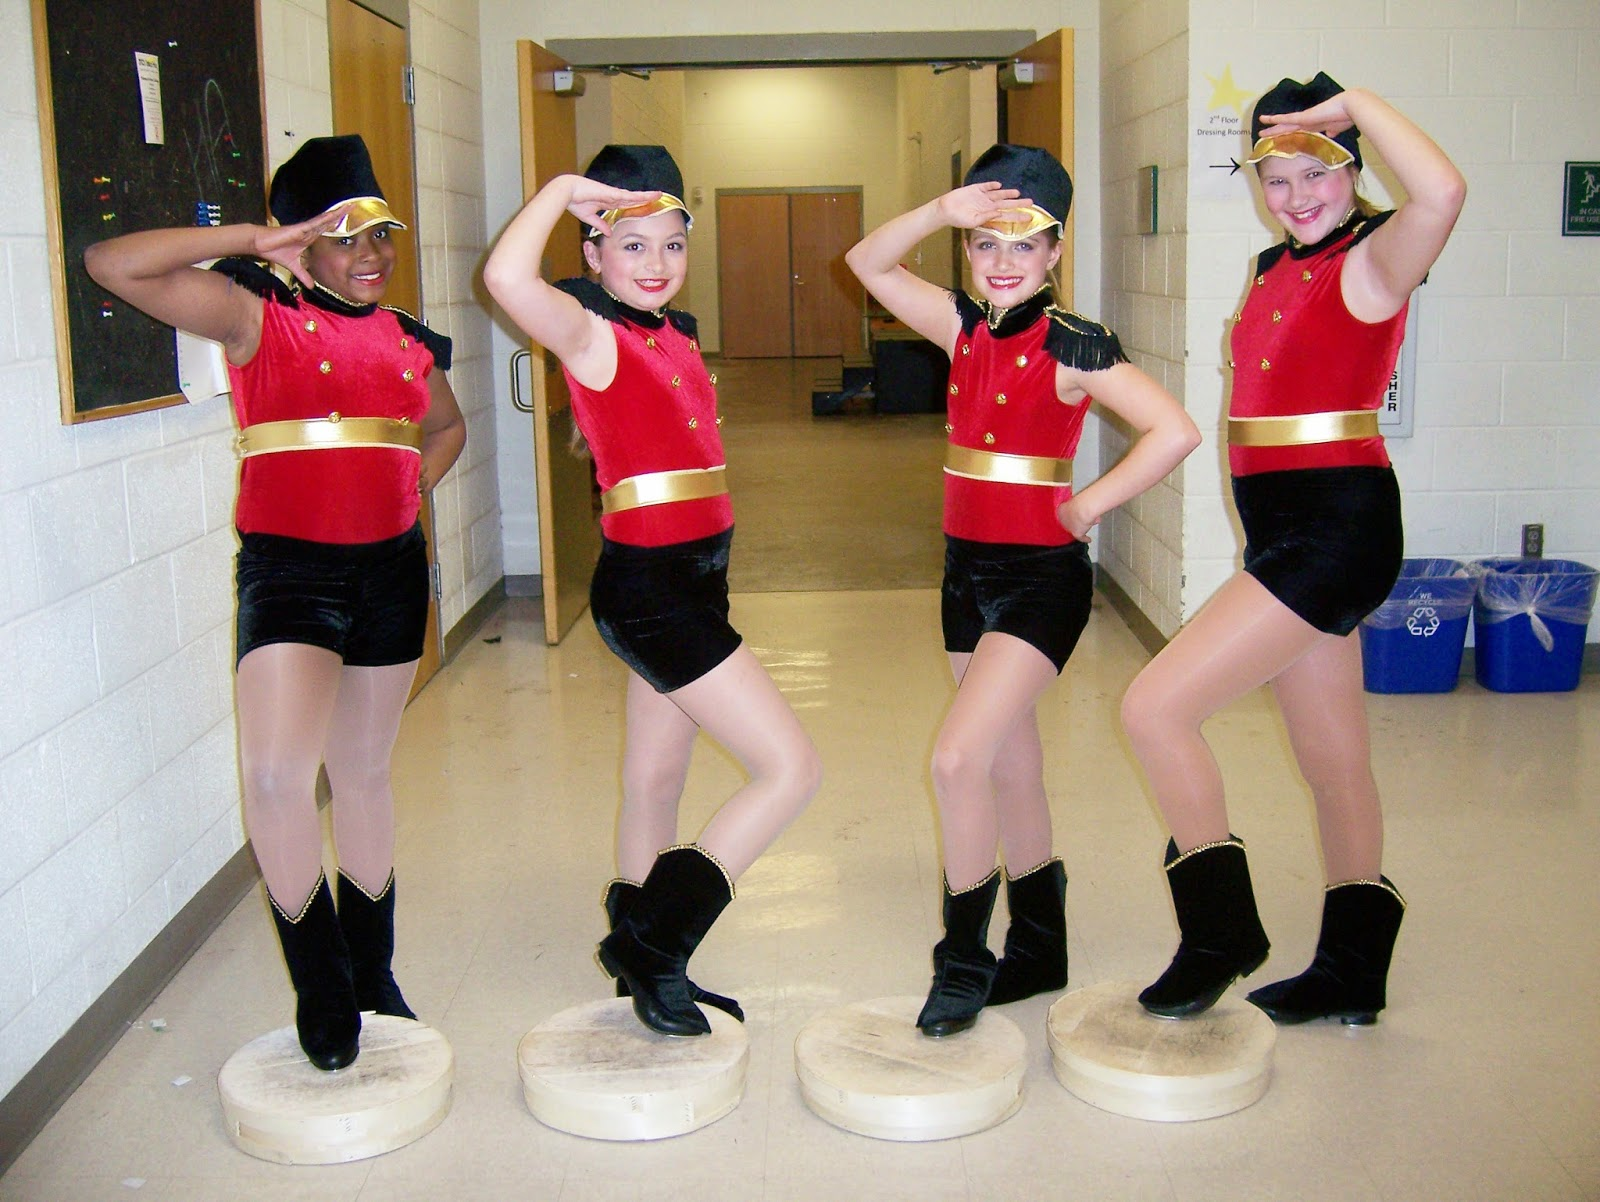 competitive tap dance studios charlotte